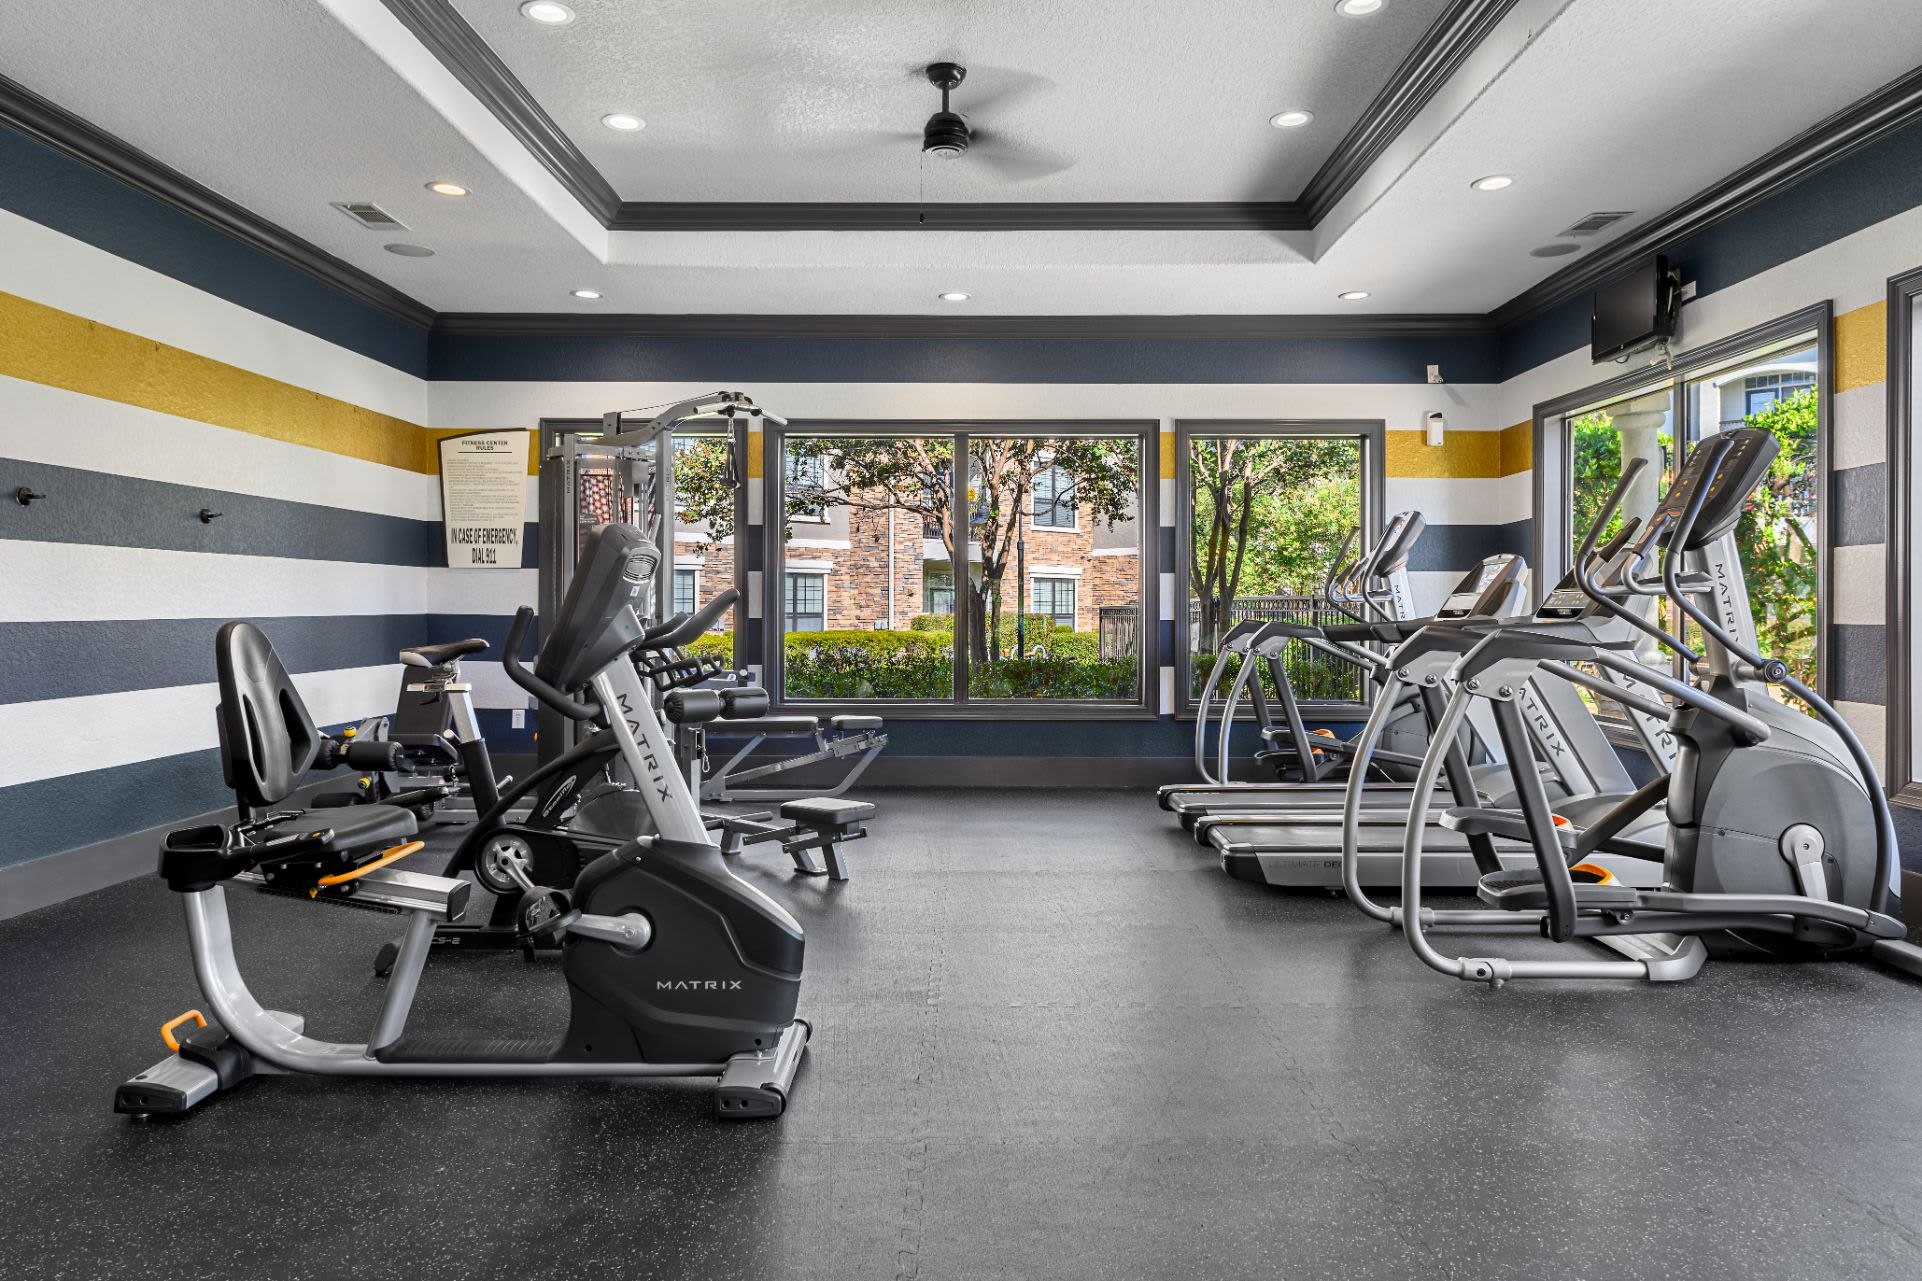 Cardio machines in fitness center at Marquis Lakeline Station in Austin, Texas